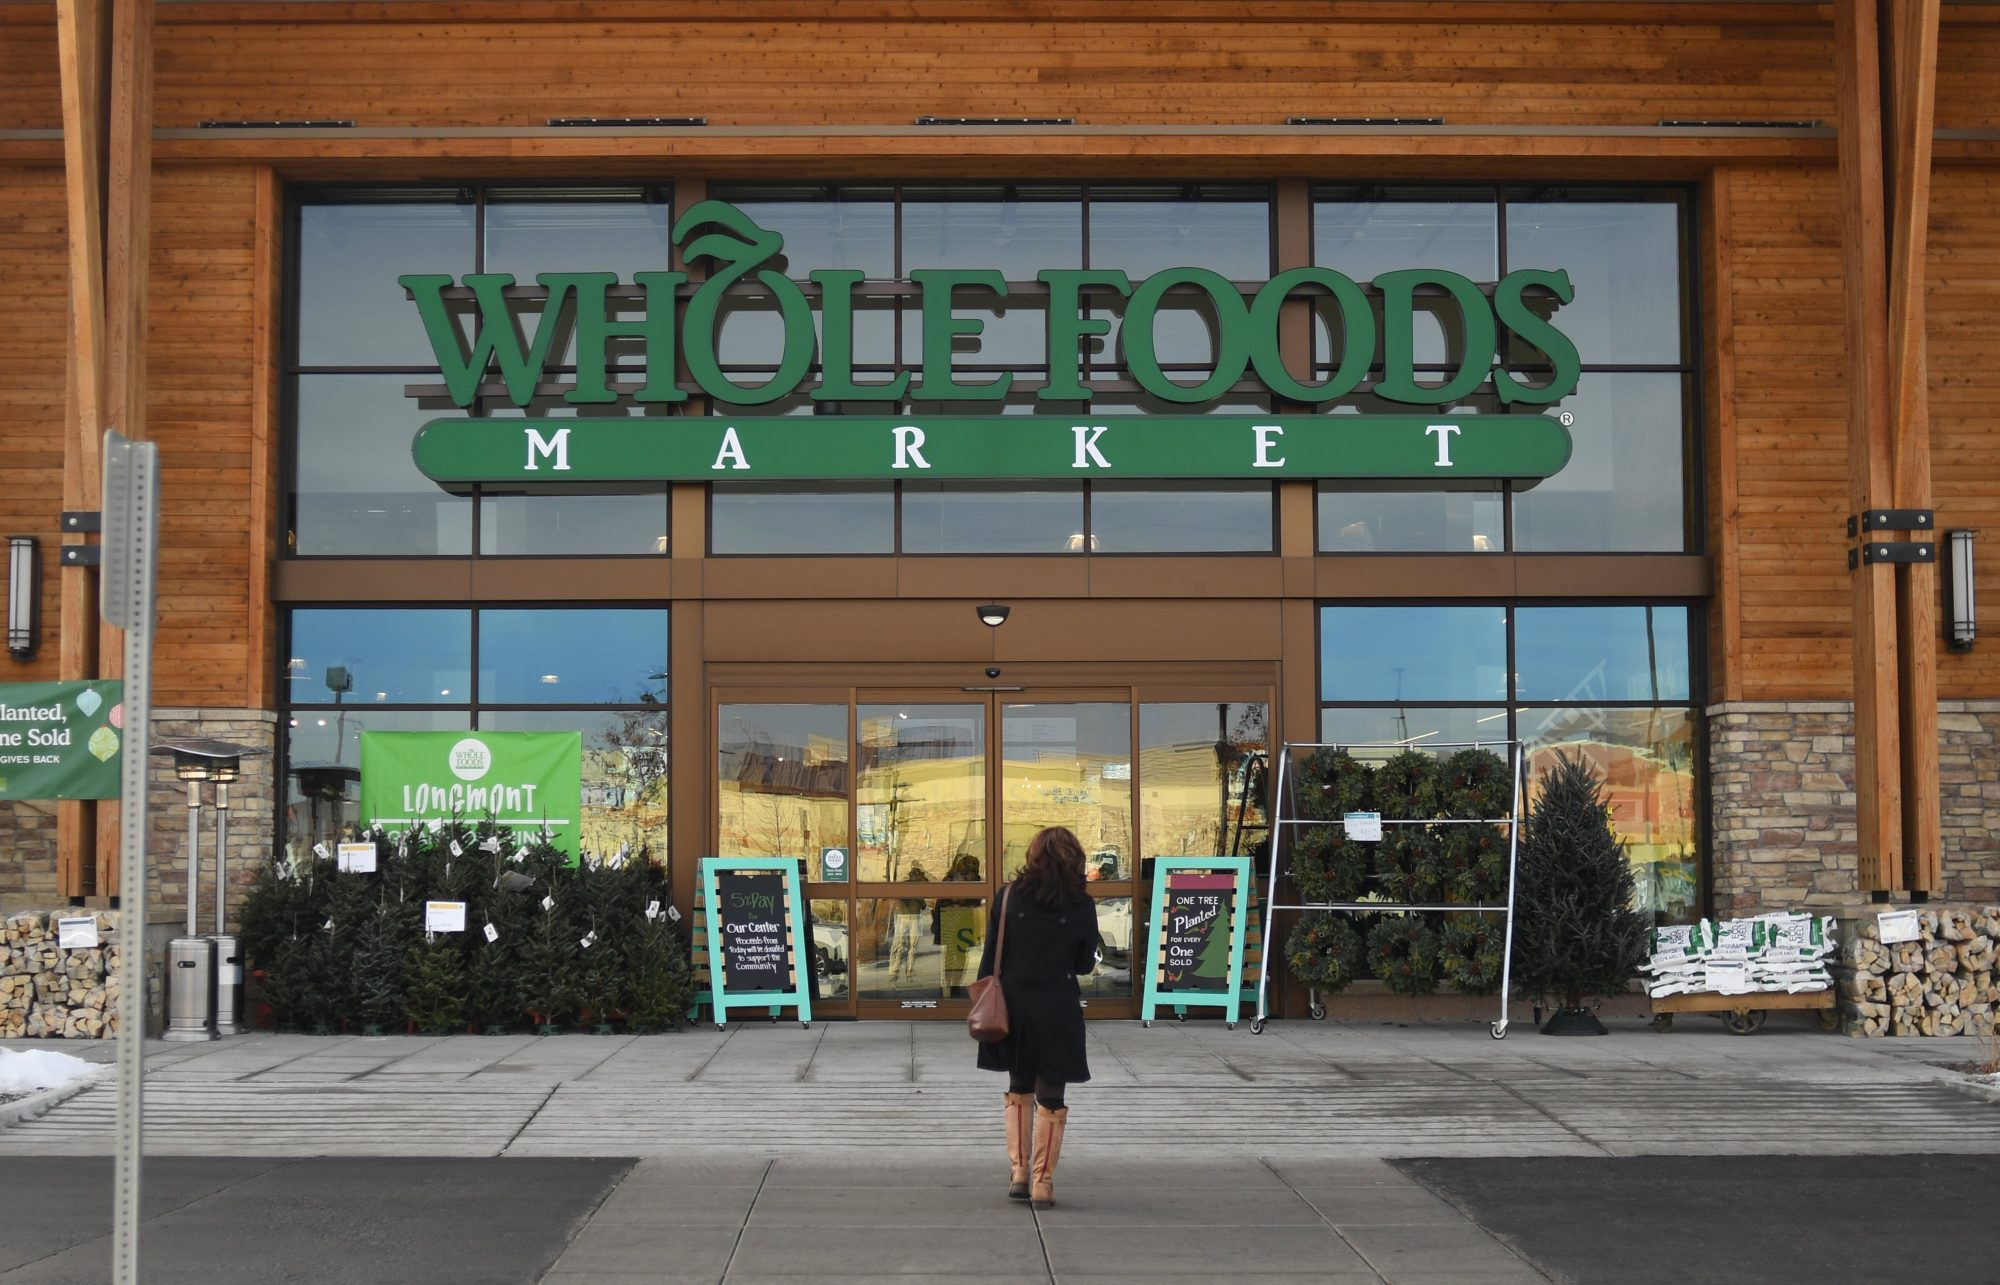 You Can Now Order Whole Foods Delivery With Your Voice, Thanks to Amazon's Alexa